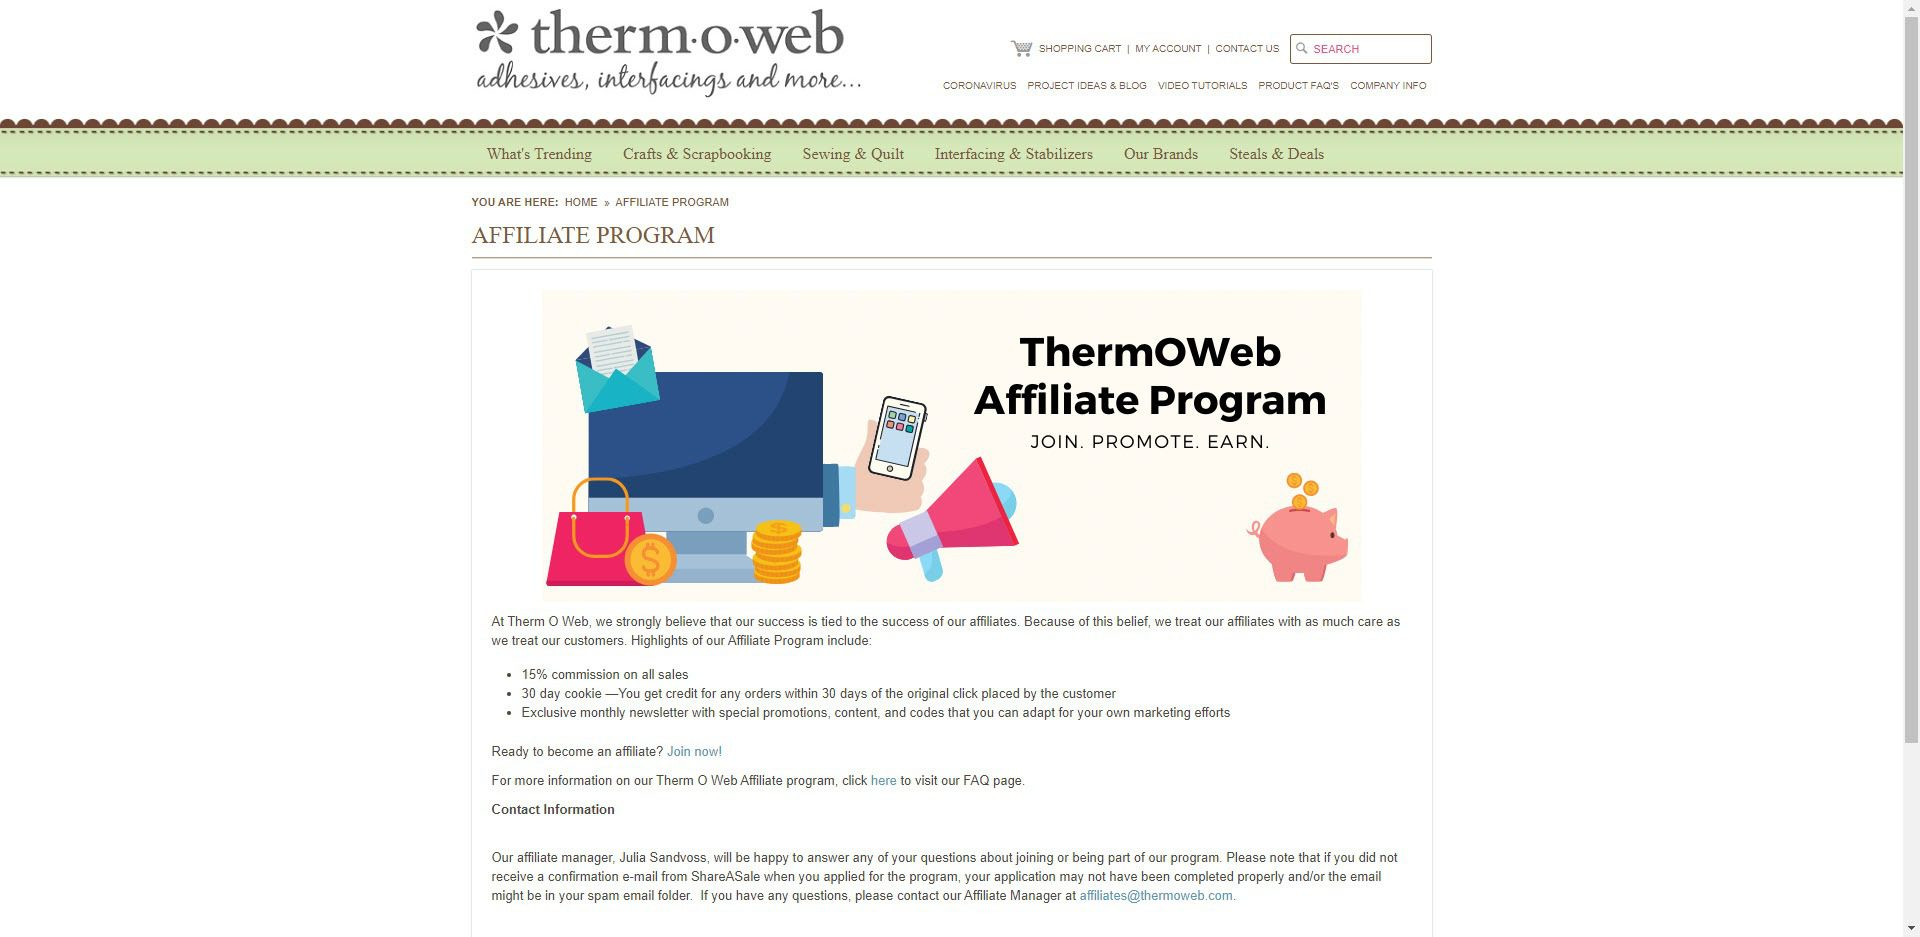 Scrapbooking Affiliate Programs - thermoweb affiliate